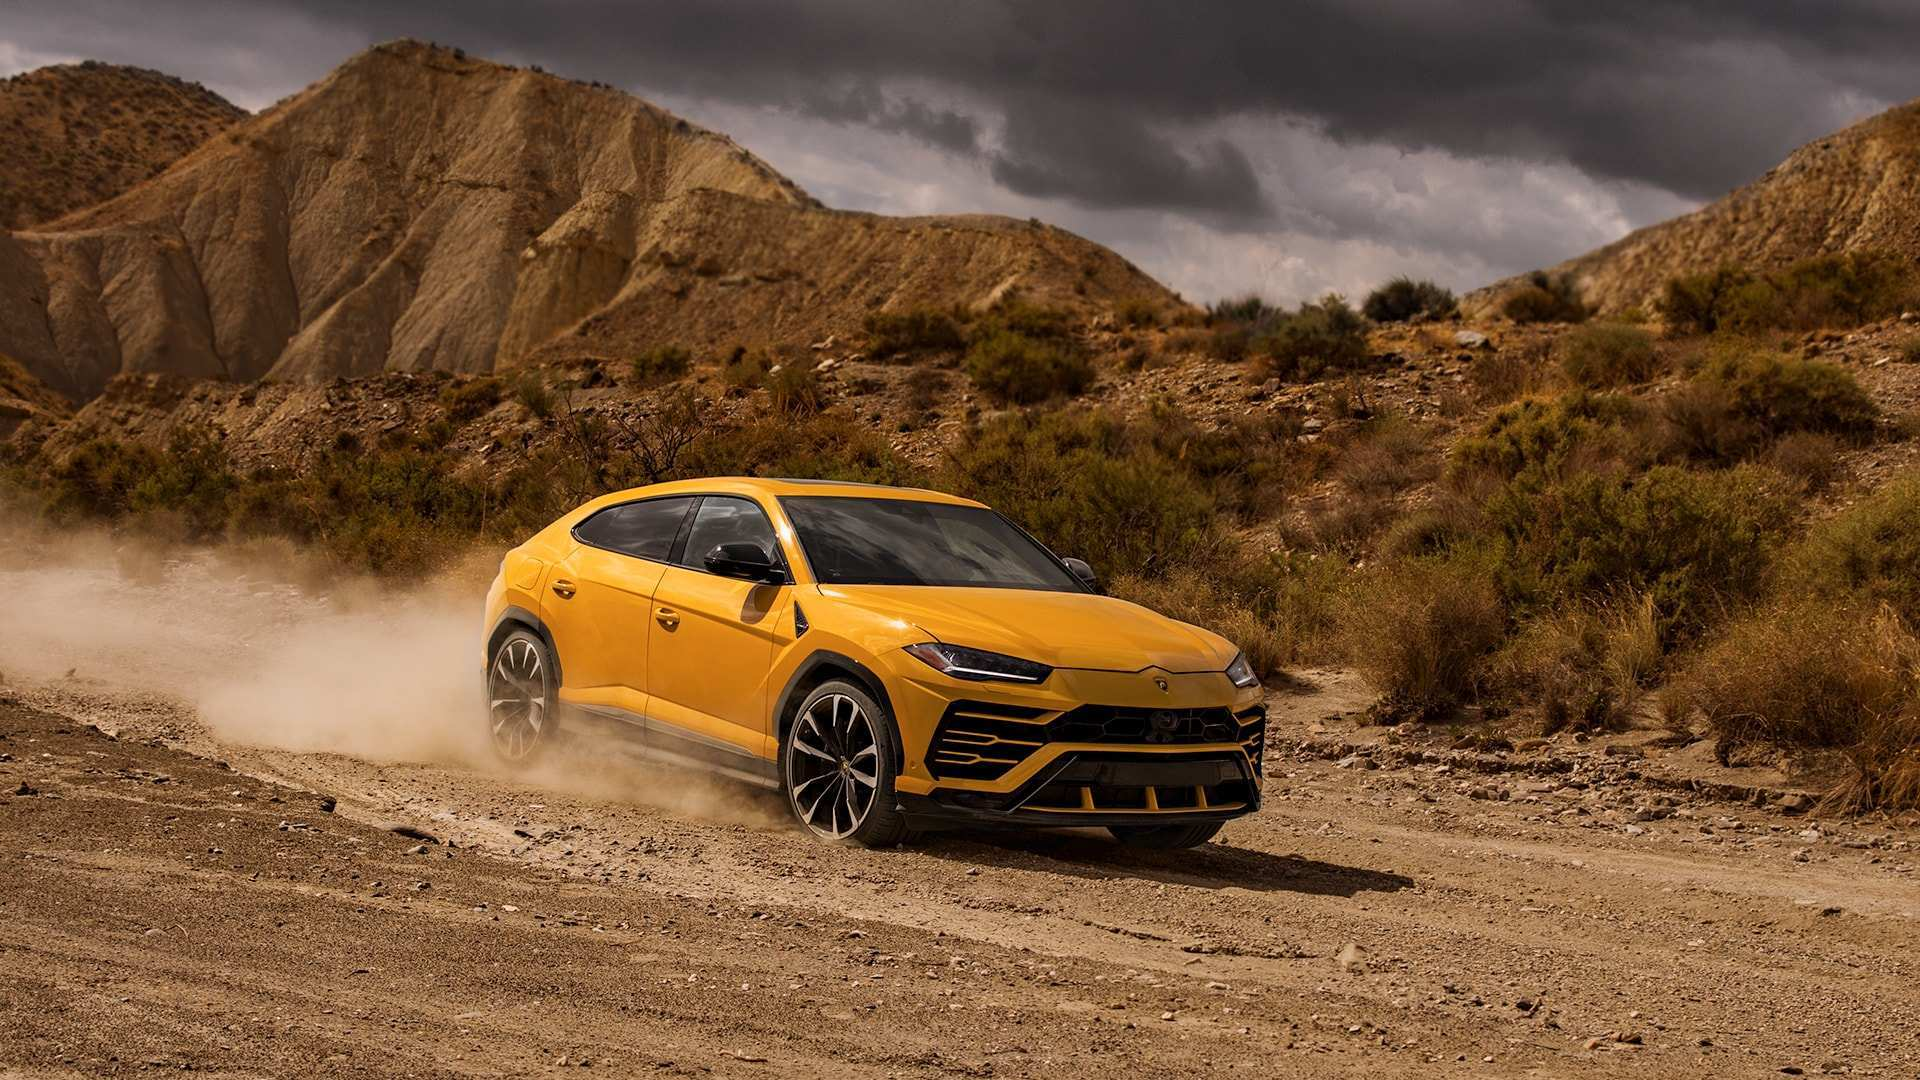 64 All New 2019 Lamborghini Urus Price Price And Review By 2019